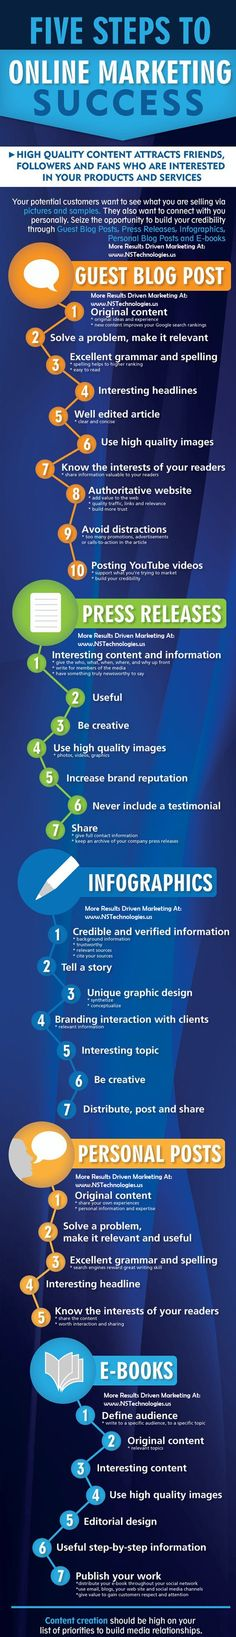 5 Steps To Online Marketing Success Author Nick Simpson - Look check out this infographic and impress clients, drive new visitors and you will also build long term traffic that can inspire growth from now until the end of time is you implement this with real effort. So read it, leave feedback and enjoy!